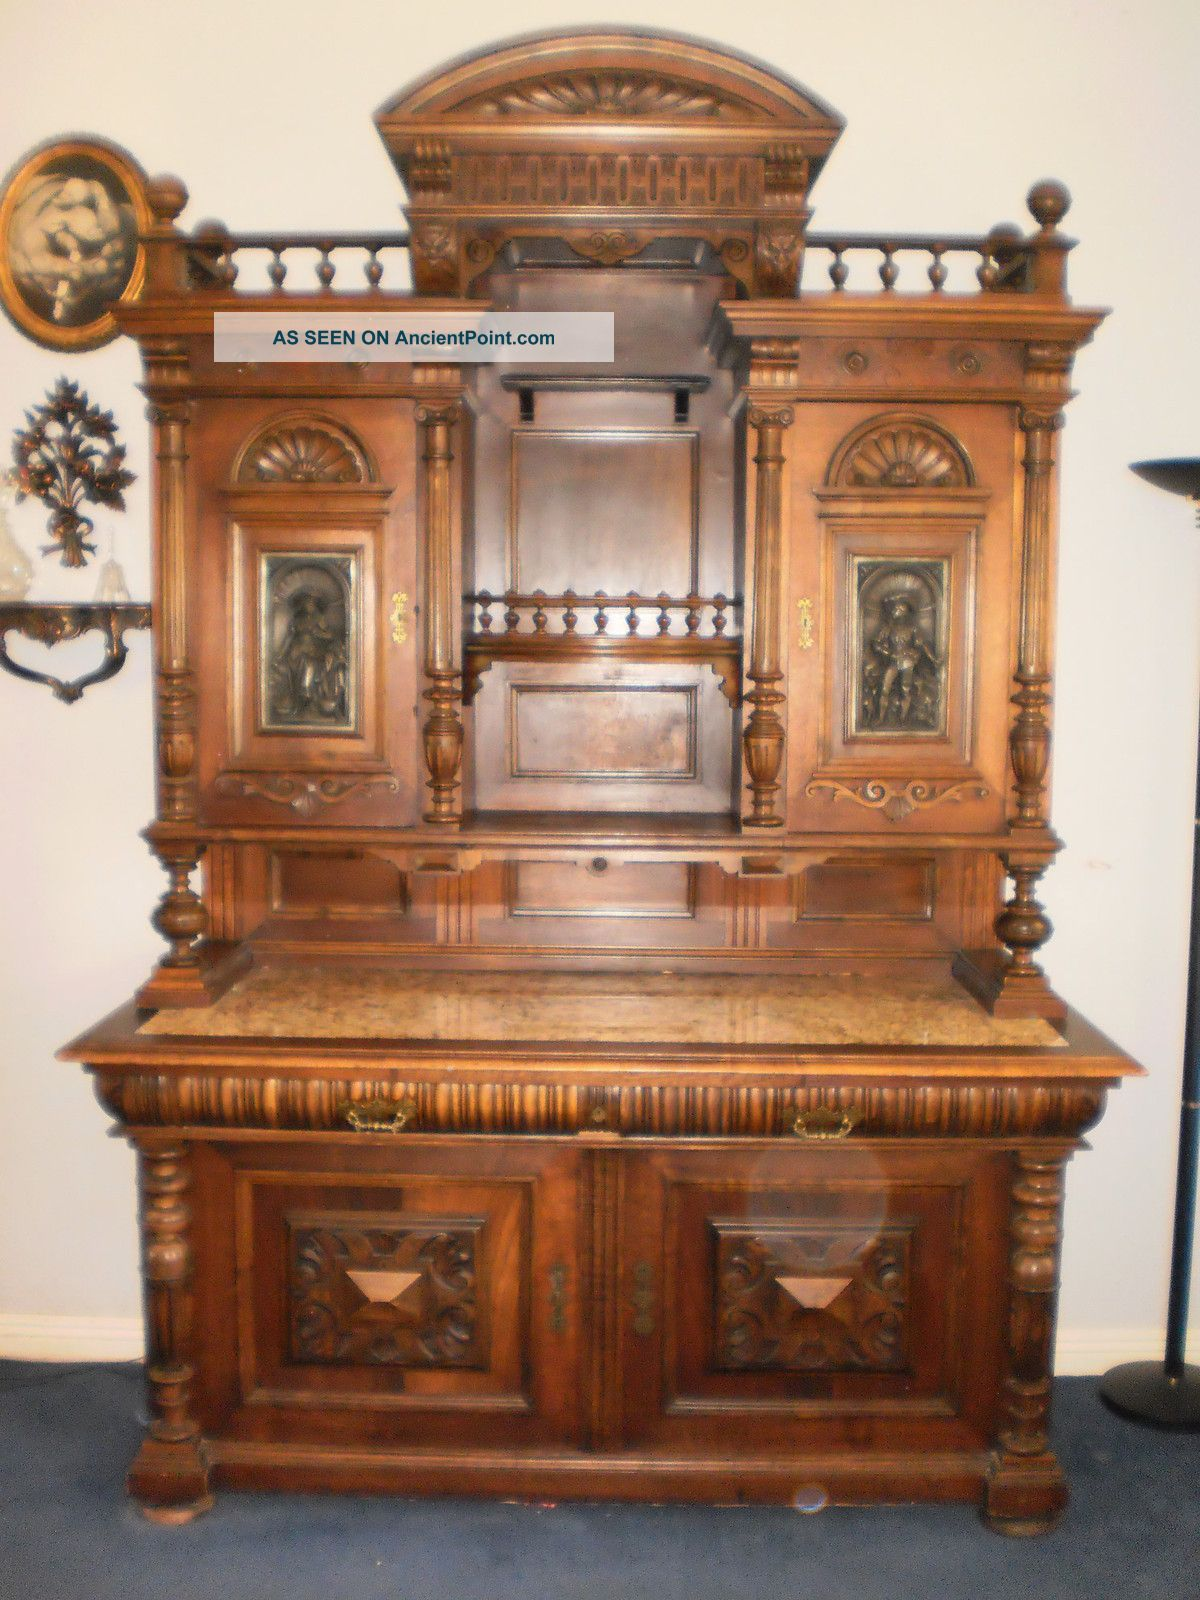 Rare 1840s Austrian Sideboard 1800-1899 photo